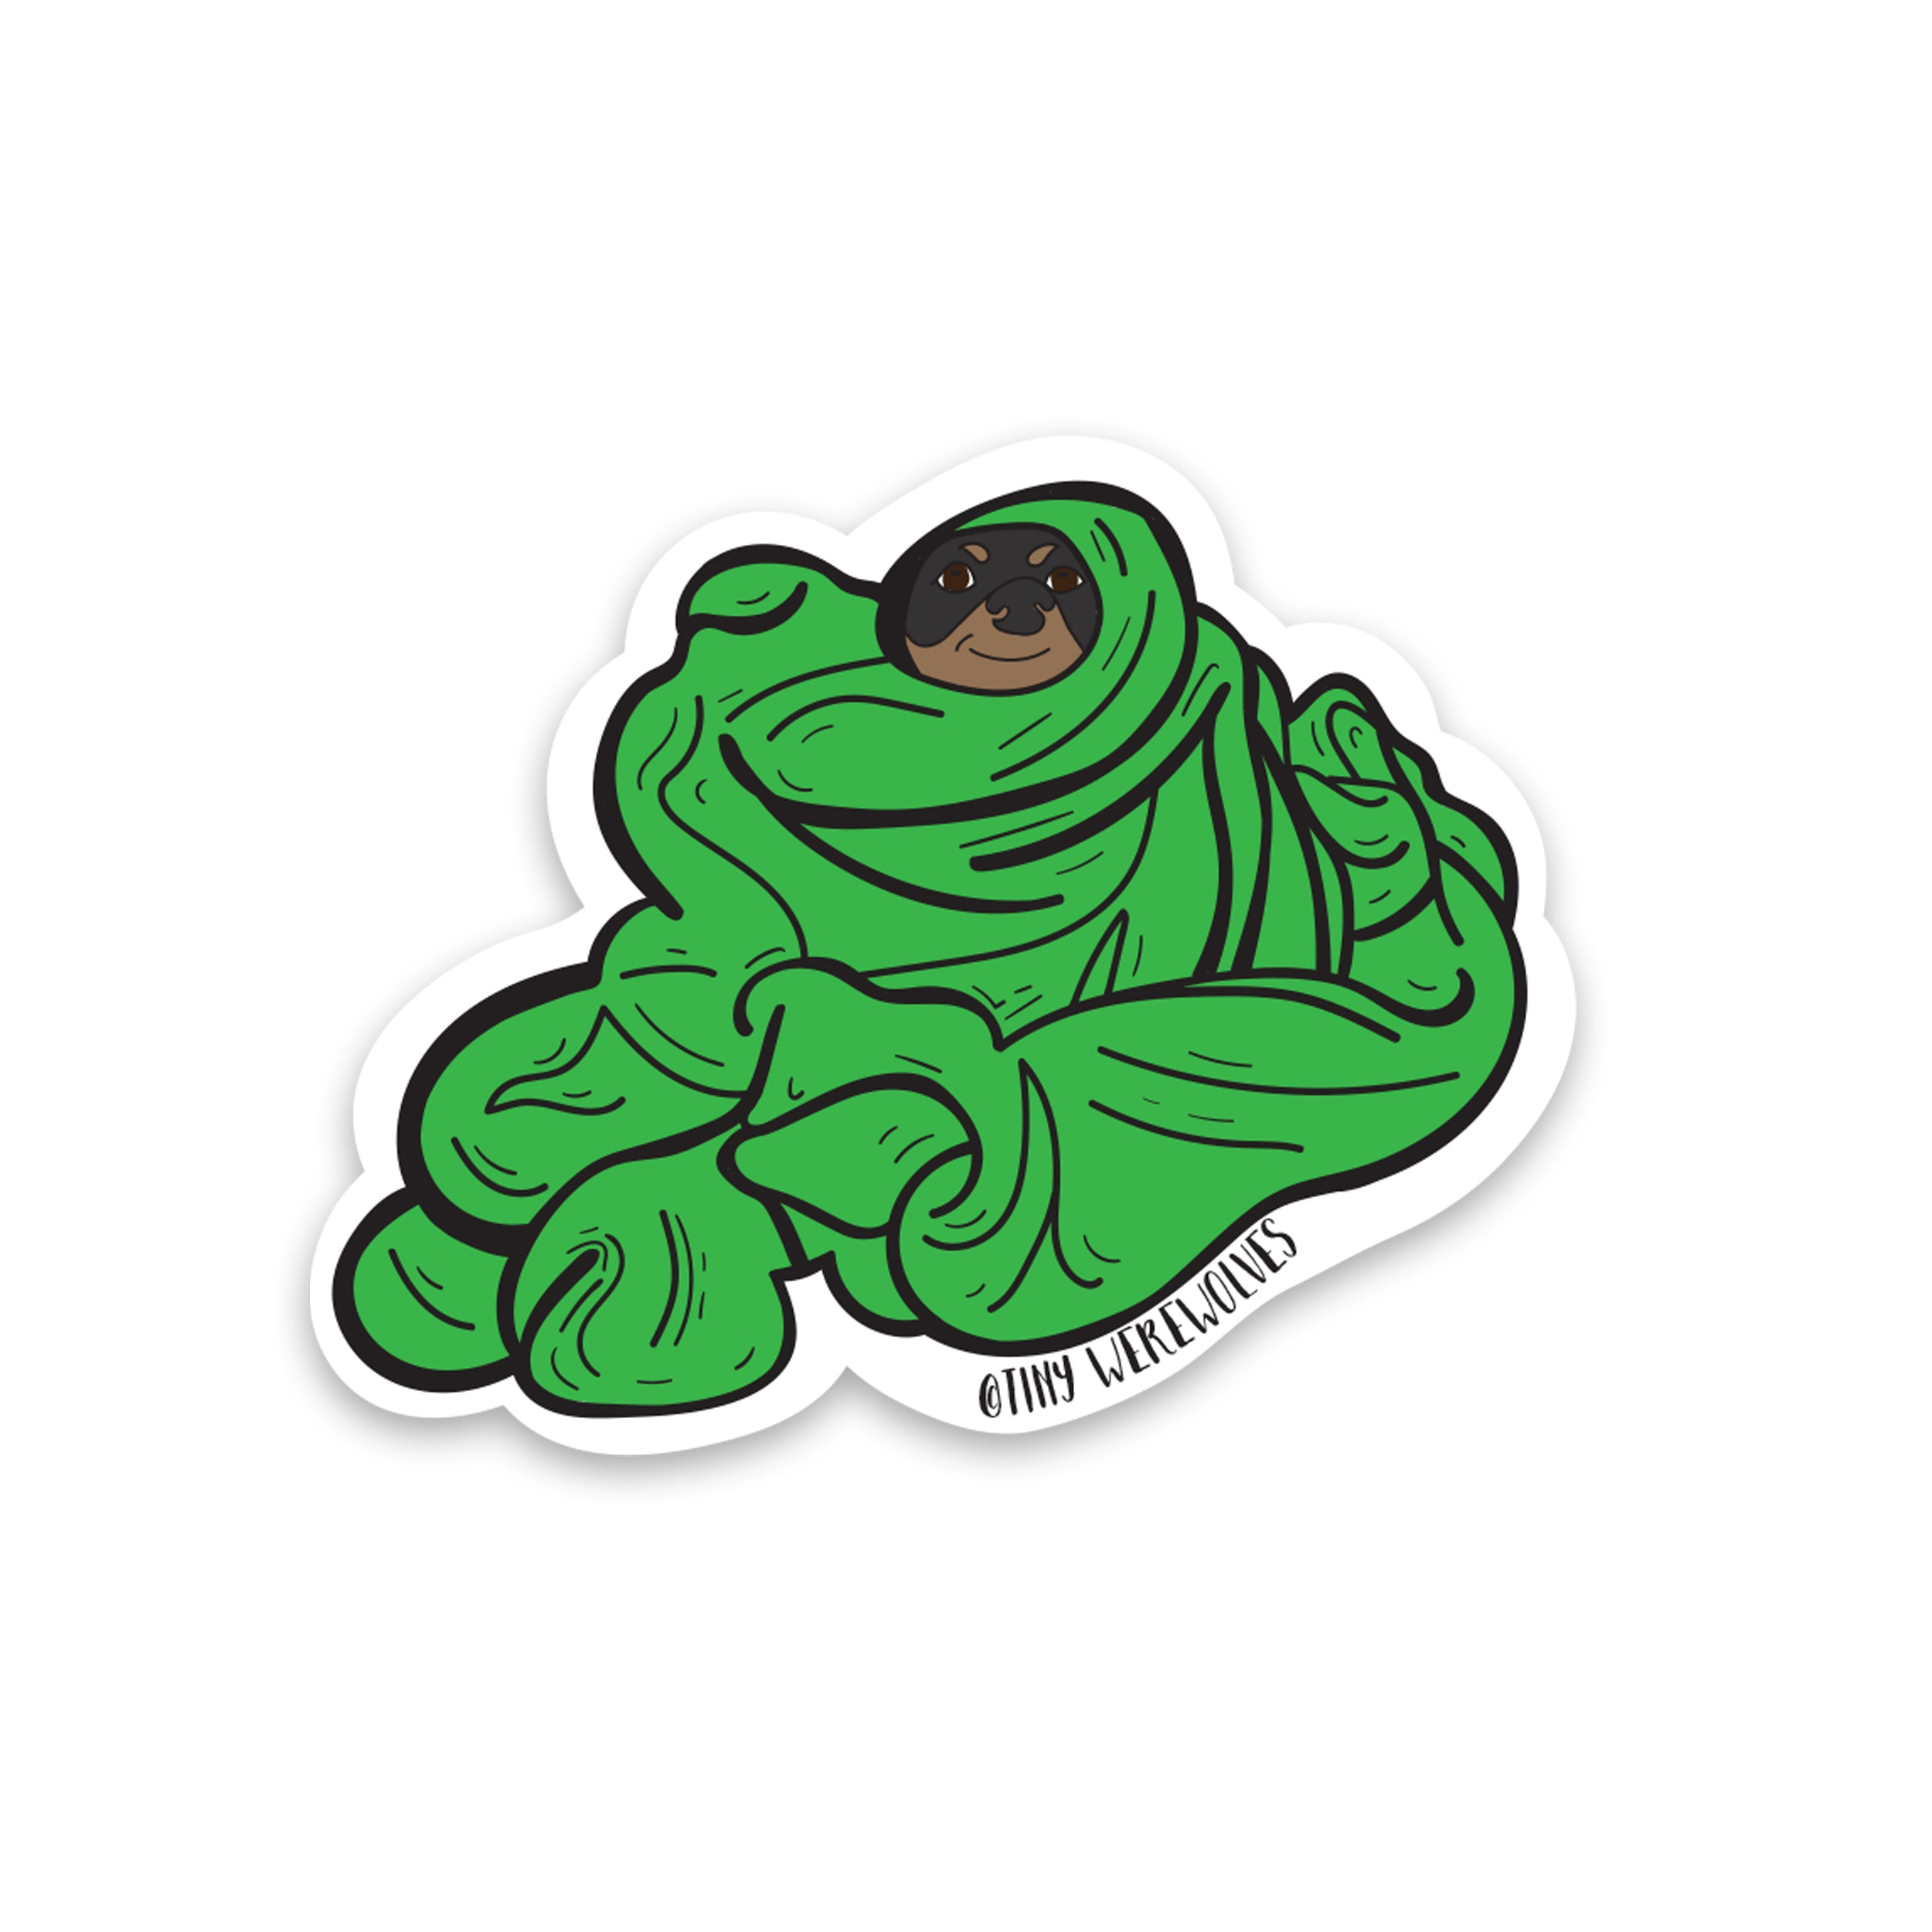 Blanket Meatball Sticker